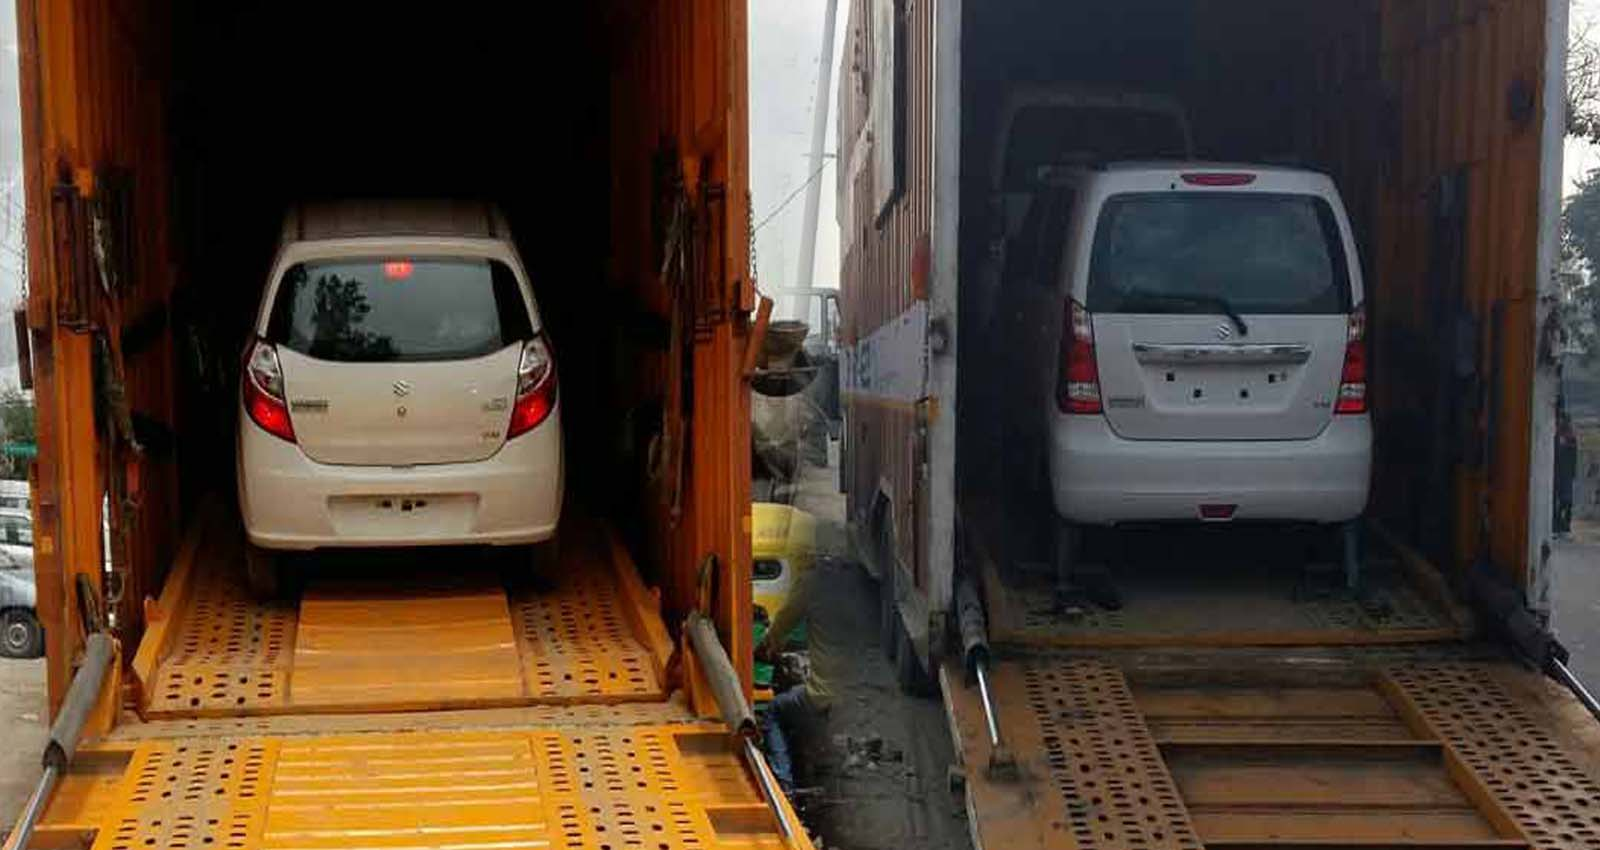 Packers and Movers Service delhi-ncr